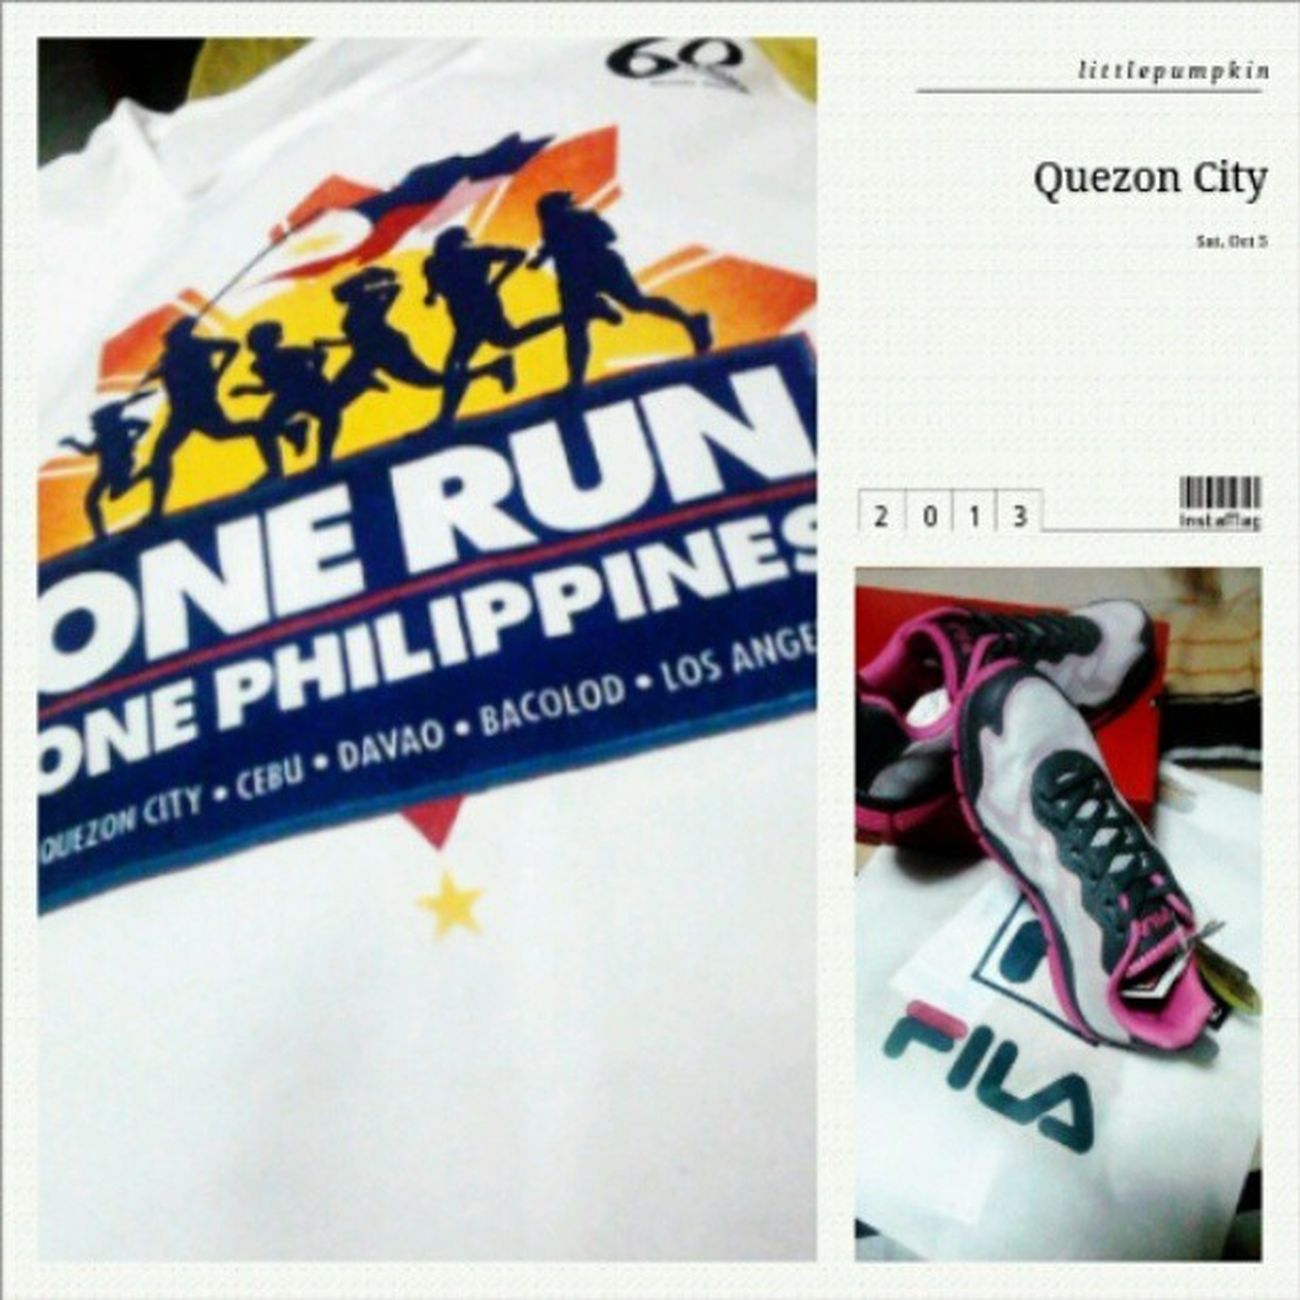 Ready na for tomorrow! :)) Imsoexxxoited Kapamilya60years Onerun Bayantel morning run healthylifestyle 3klongrun lovedones enjoy withmylovies readytorun run shoes fila hotpink igers instapic instamag photooftheday